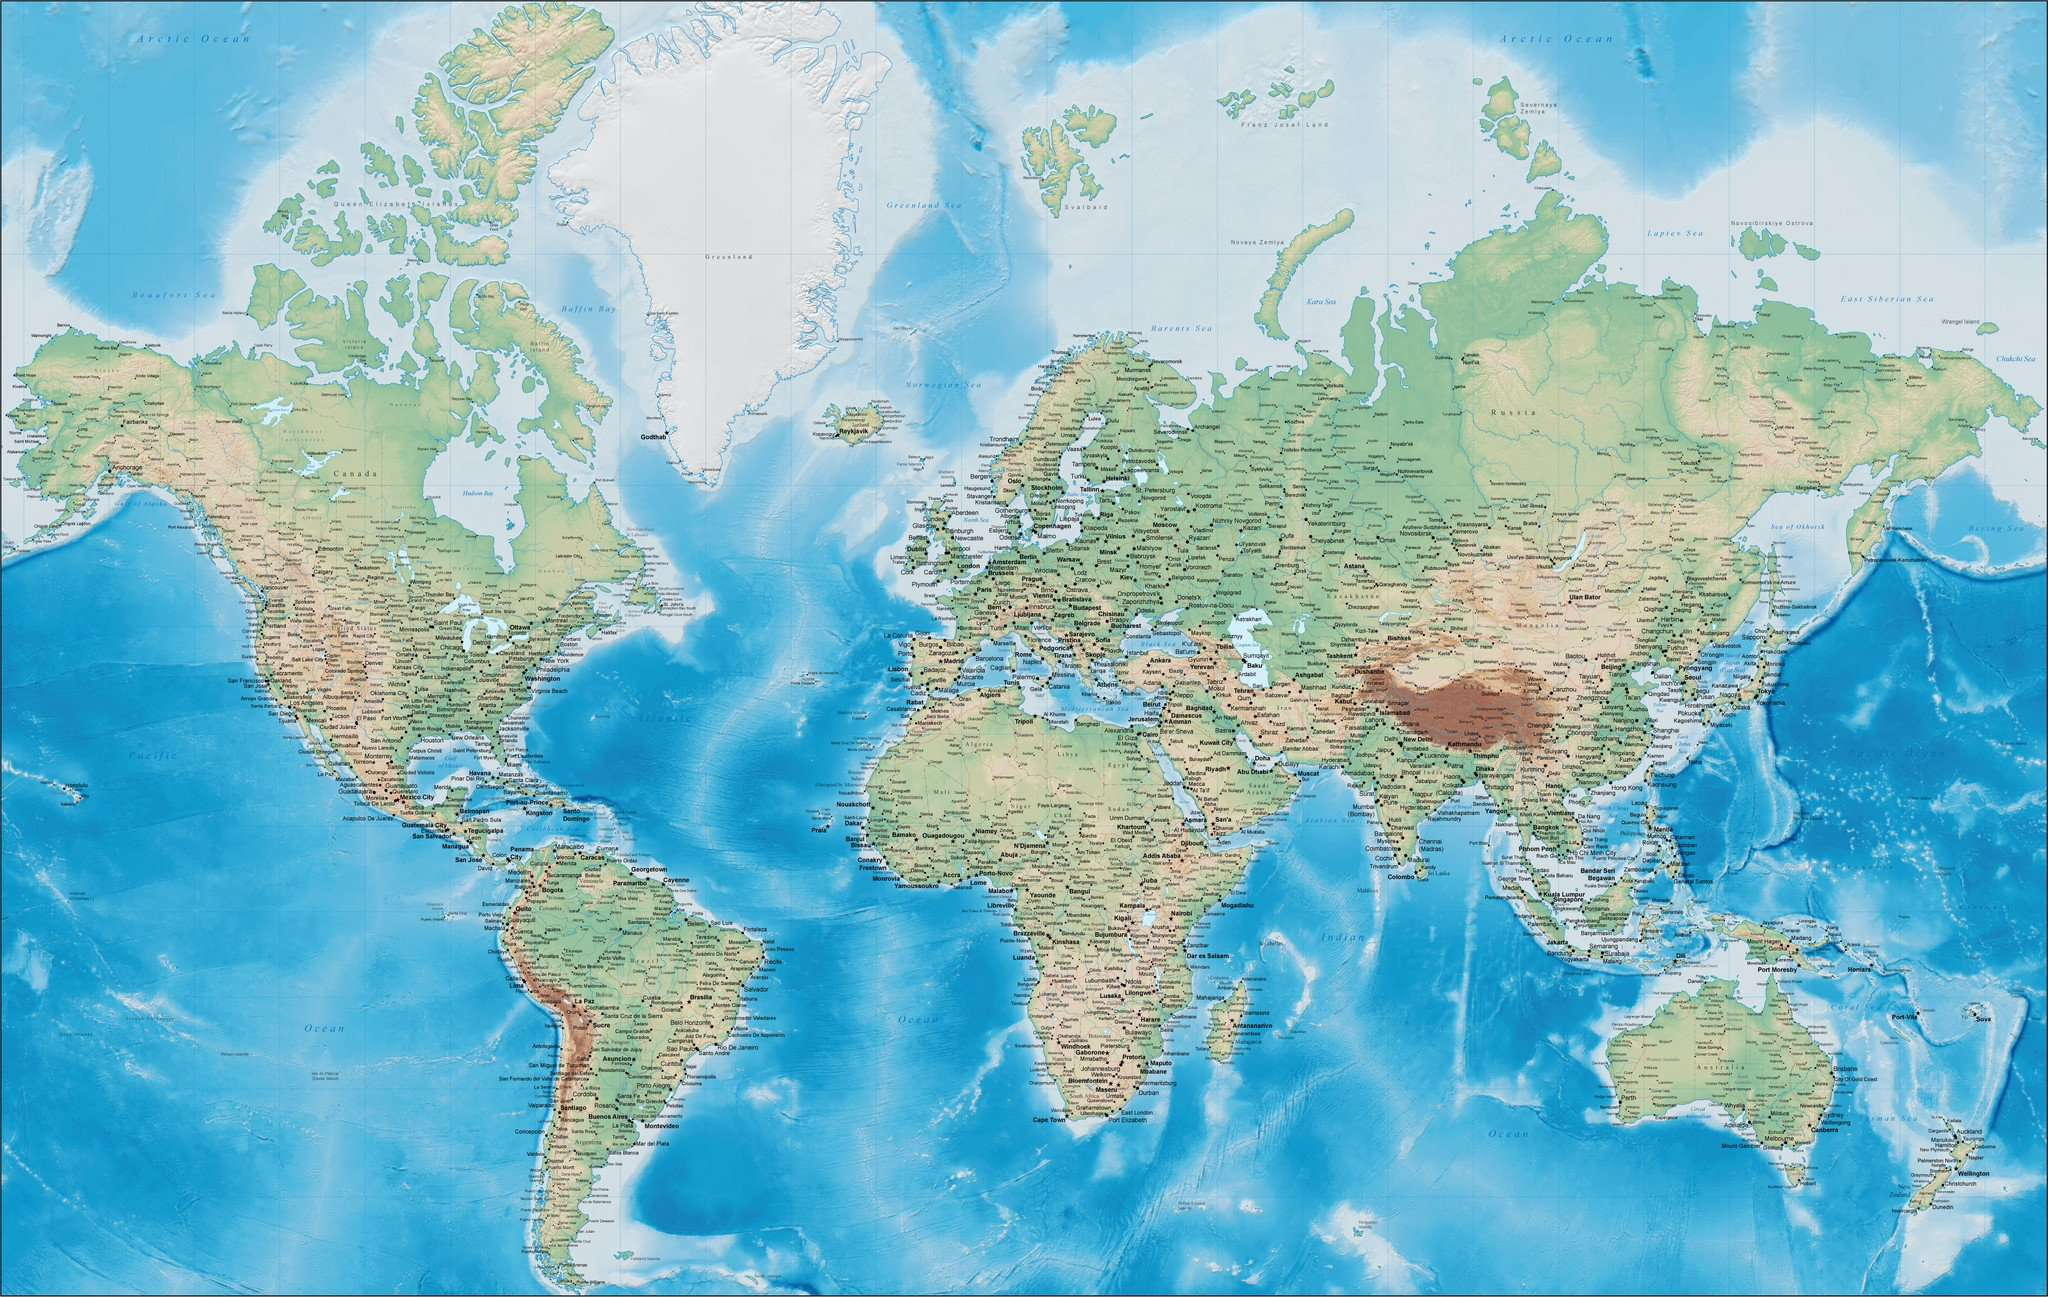 World Digital Terrain Map Mercator Projection Europe Centered - Terrain map of the us